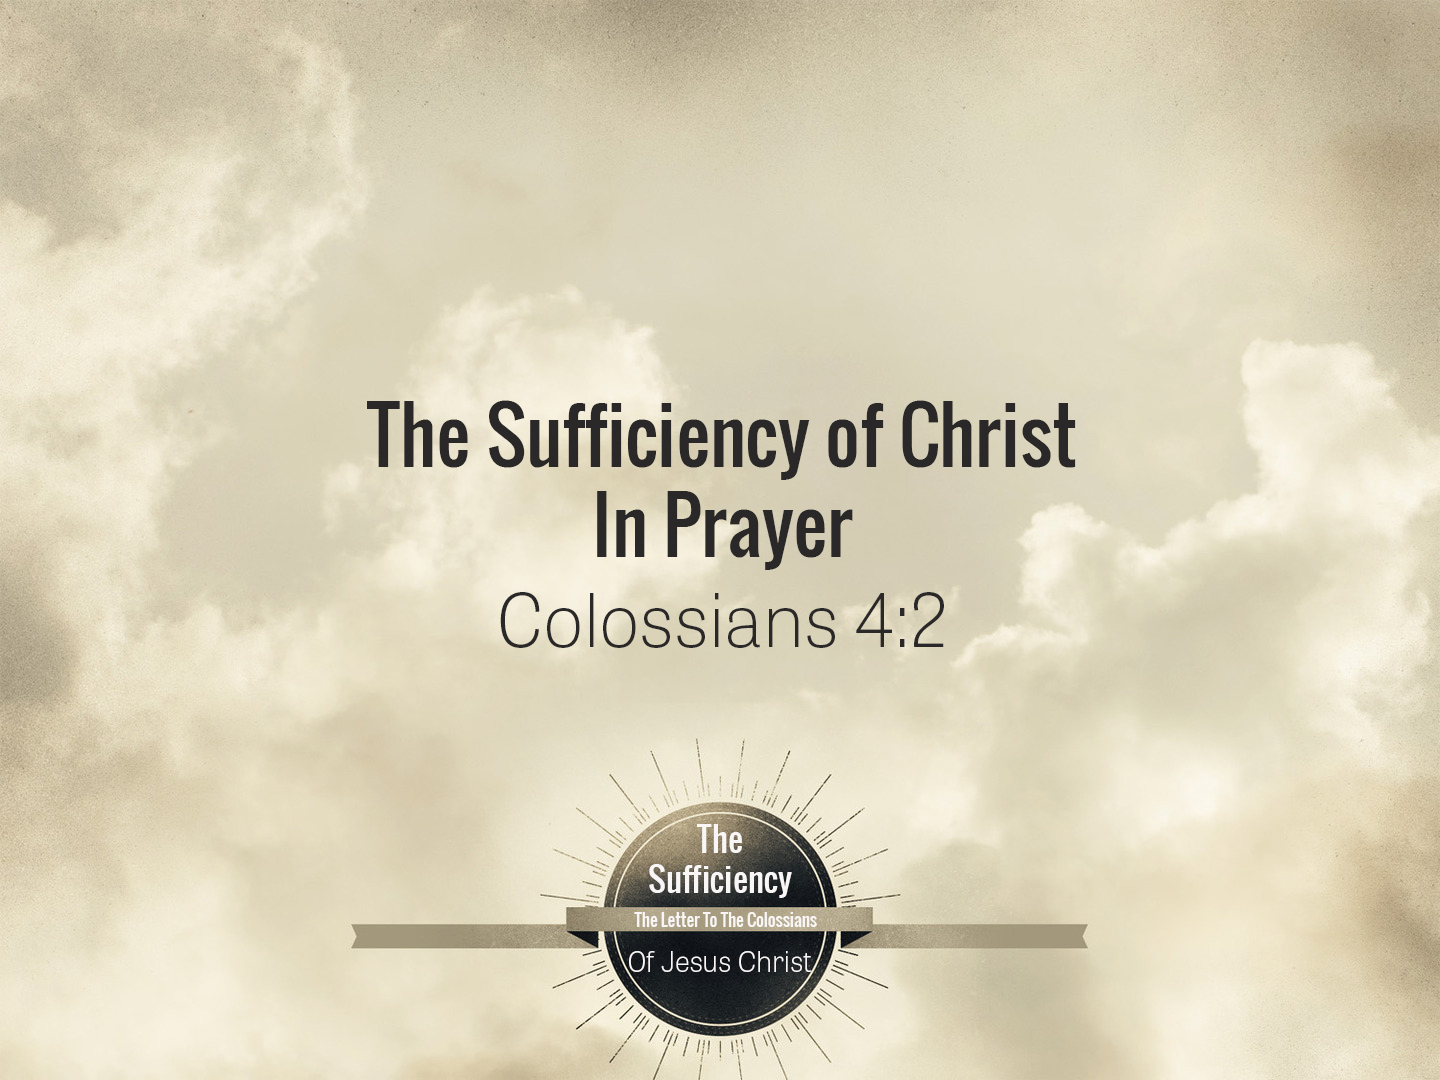 Colossians 4v2 The Sufficiency Of Christ In Prayer